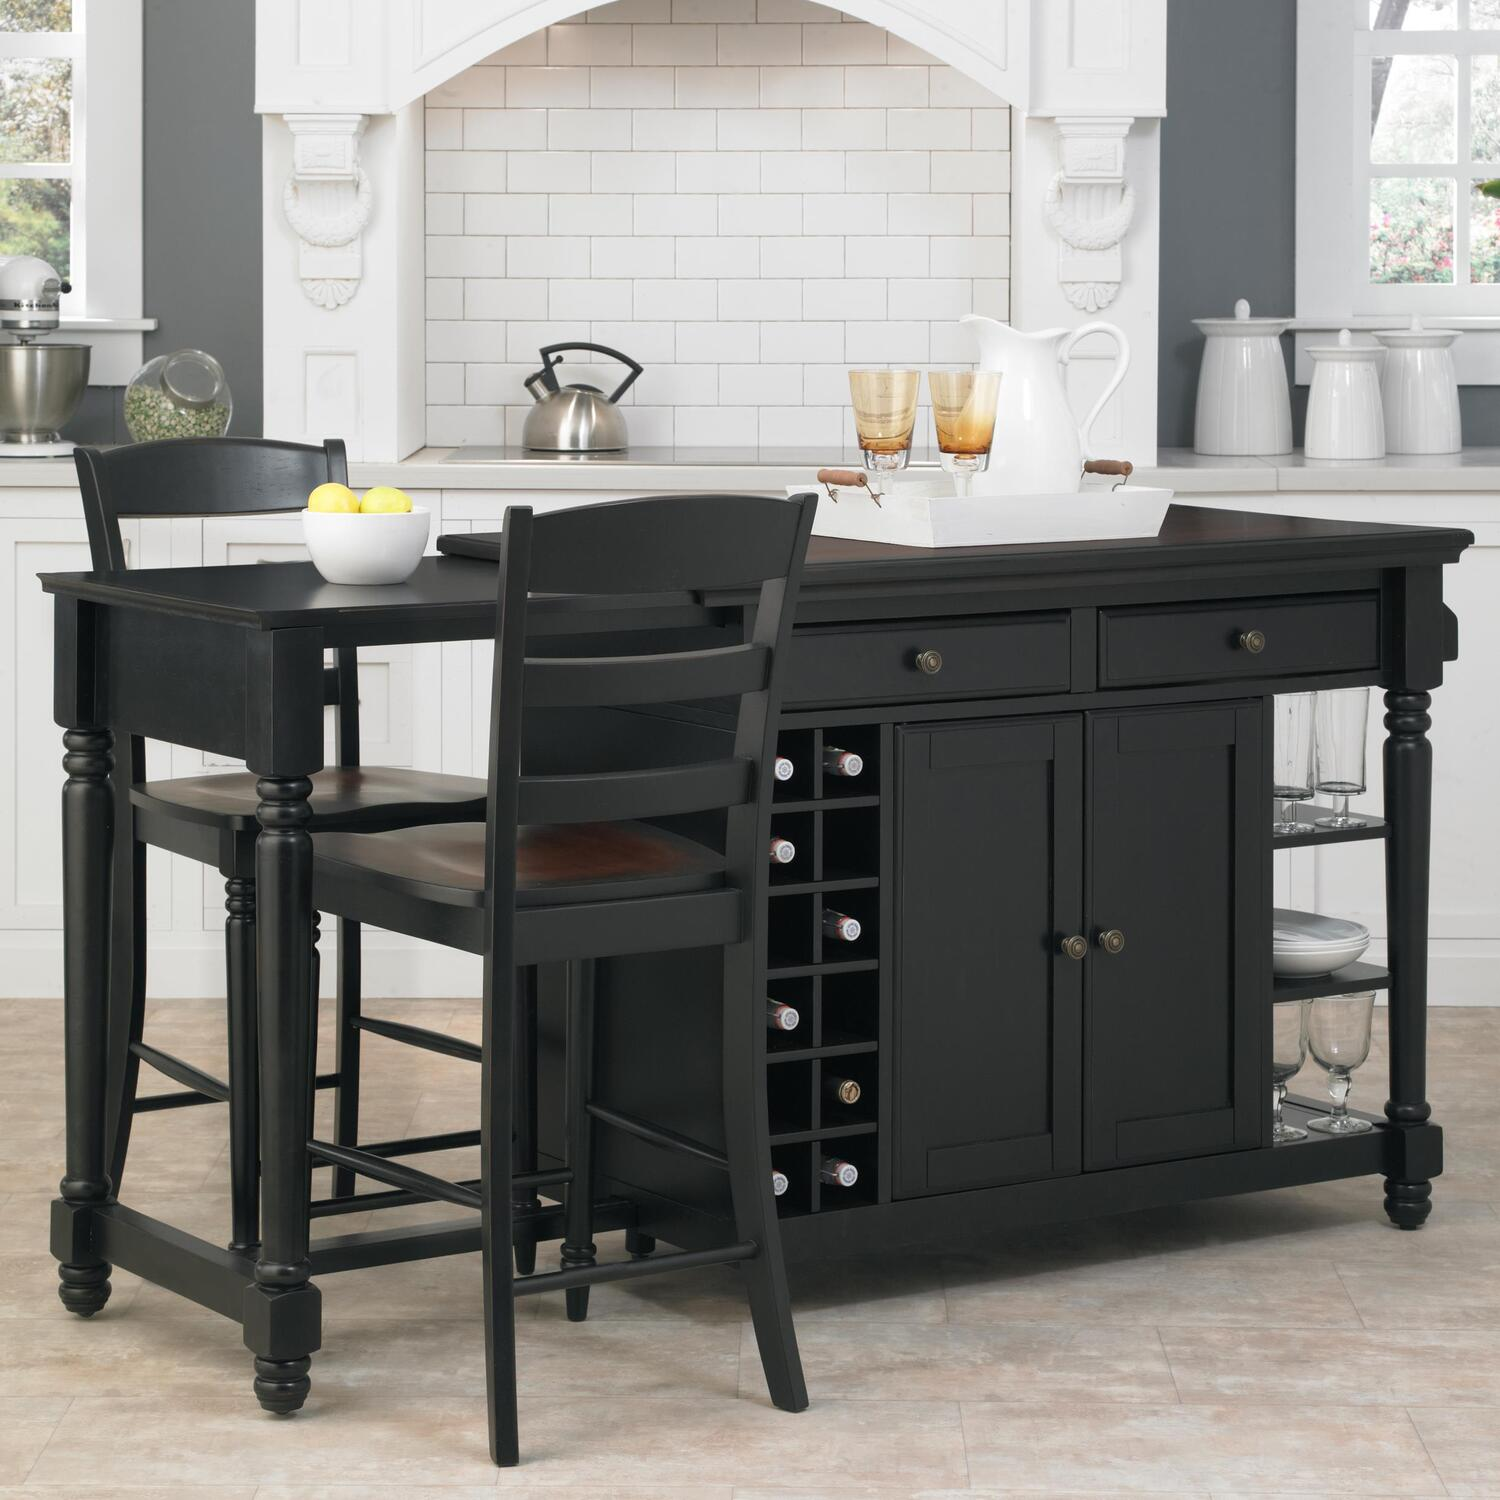 home styles grand torino kitchen island two stools by oj